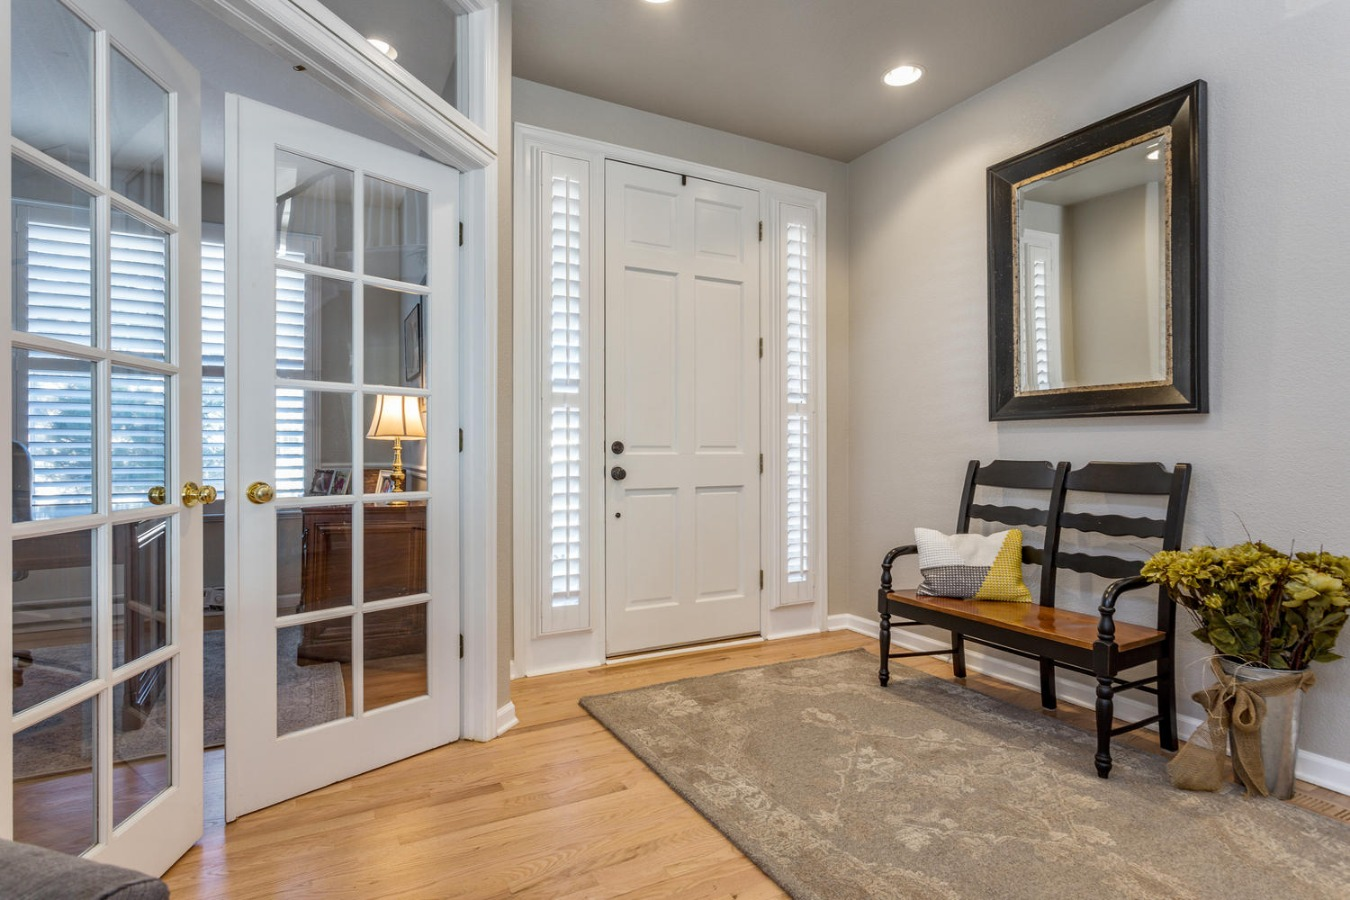 Study with French Doors at Hardwood Entry